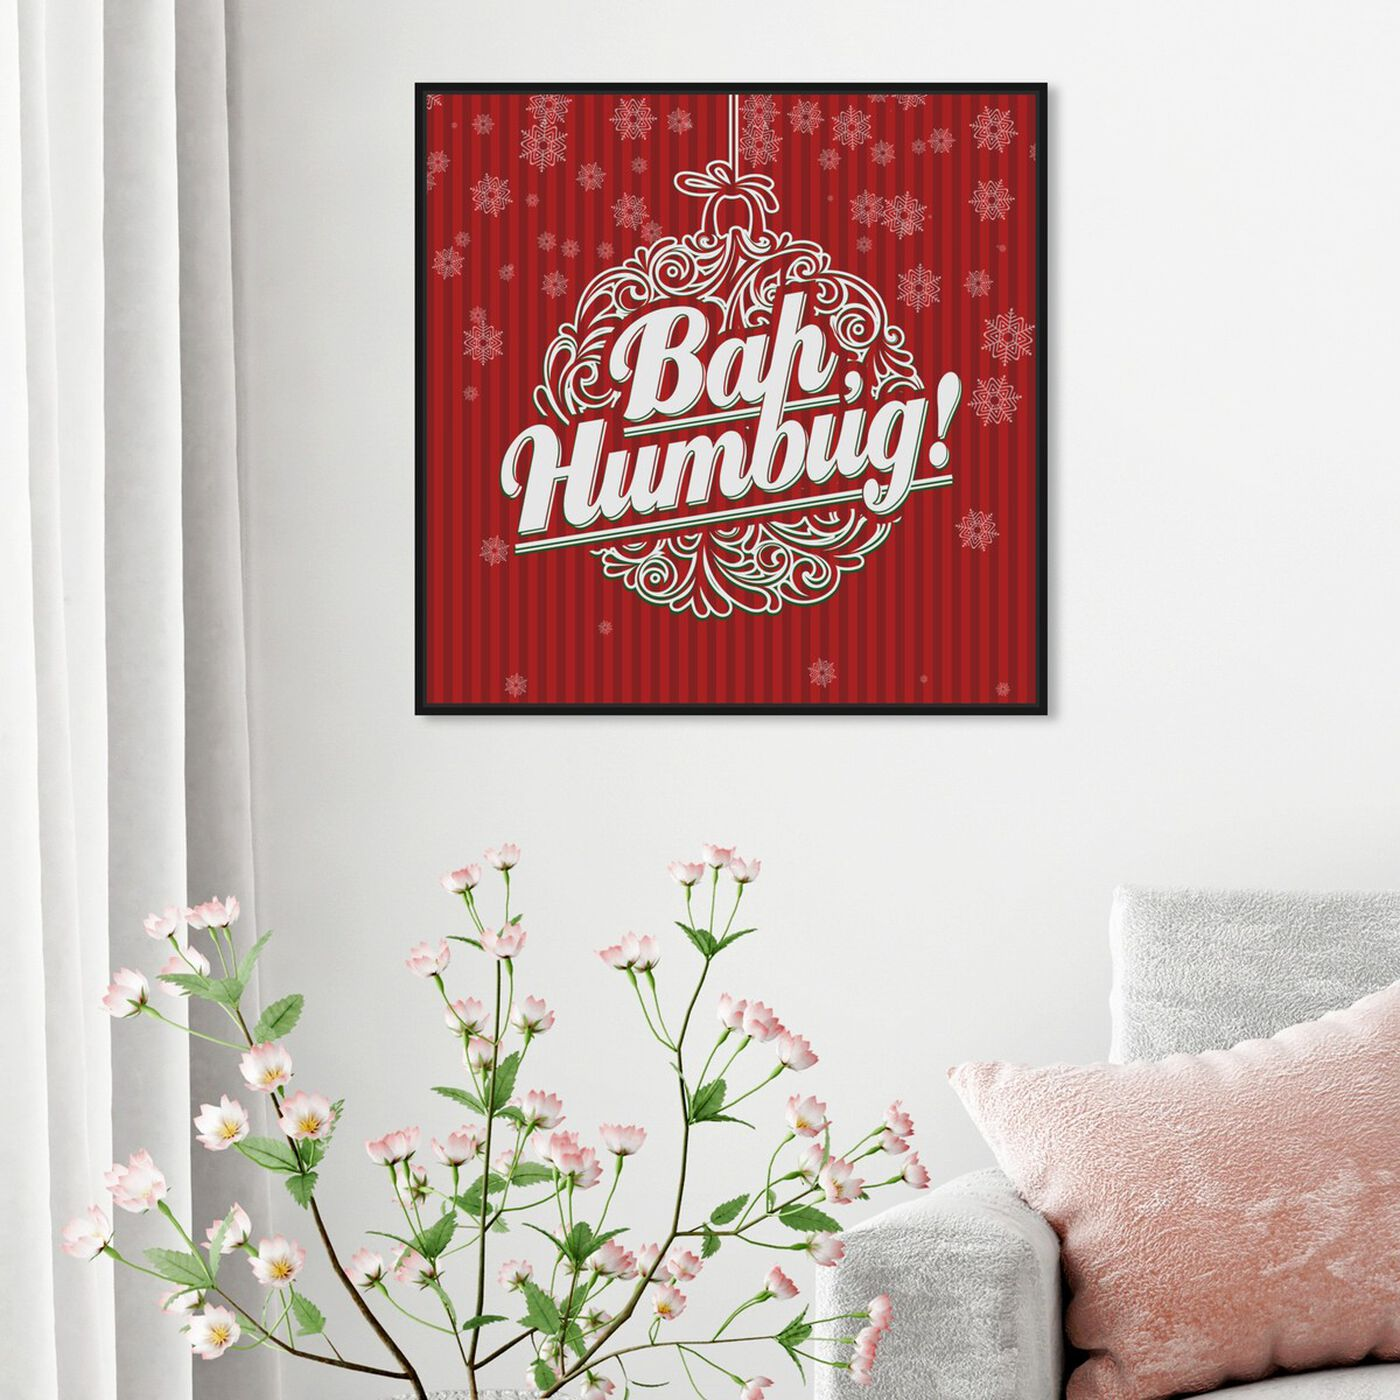 Hanging view of Bah Humbug featuring holiday and seasonal and holidays art.